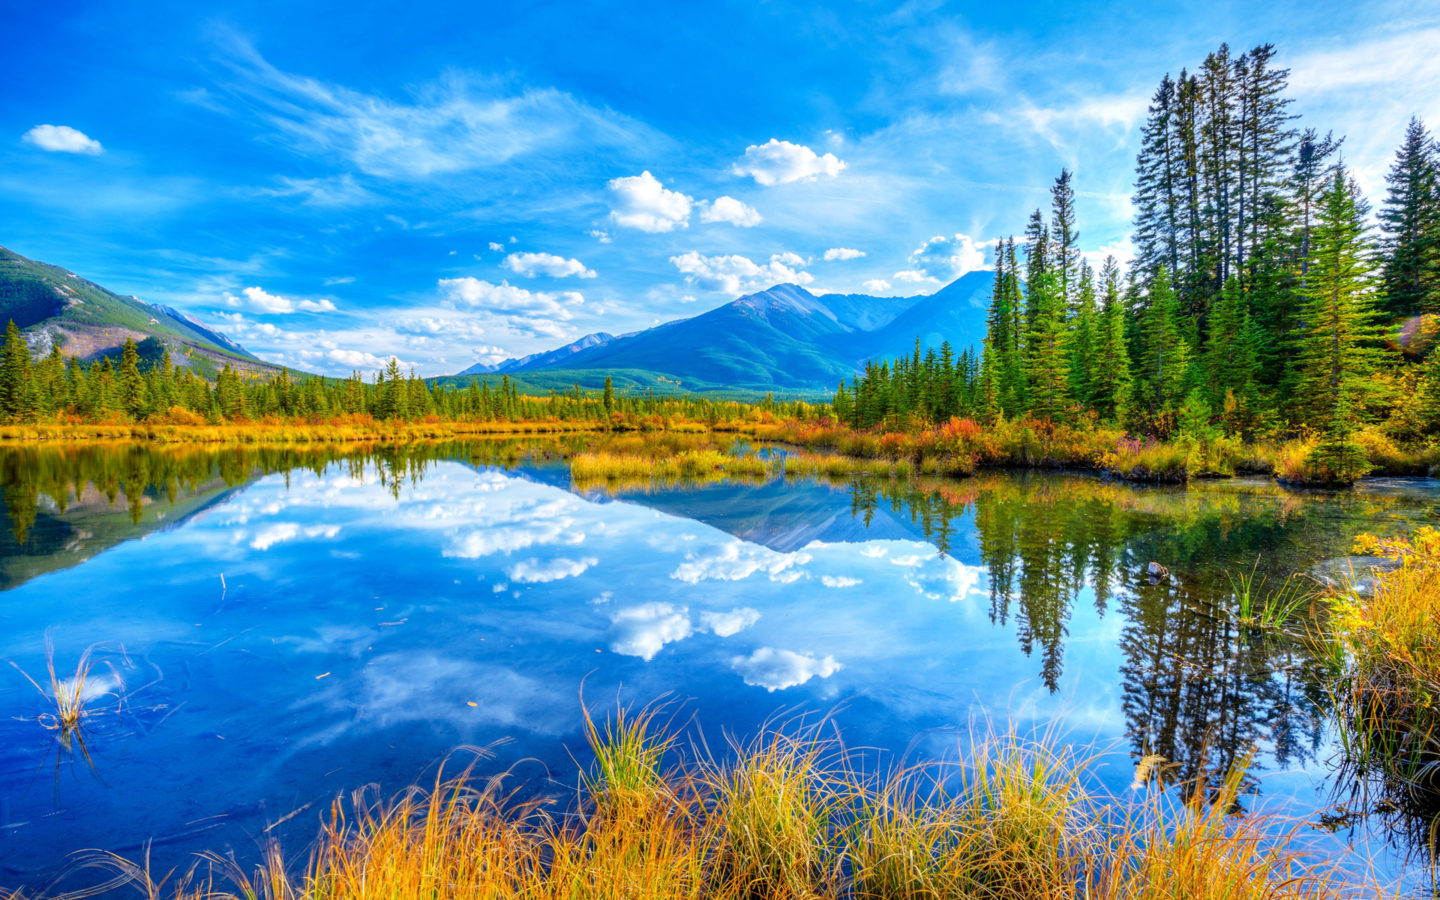 Fall Leaves Ipad Wallpaper Lake And Yellow Grass Pine Trees Reflecting The Blue Sky